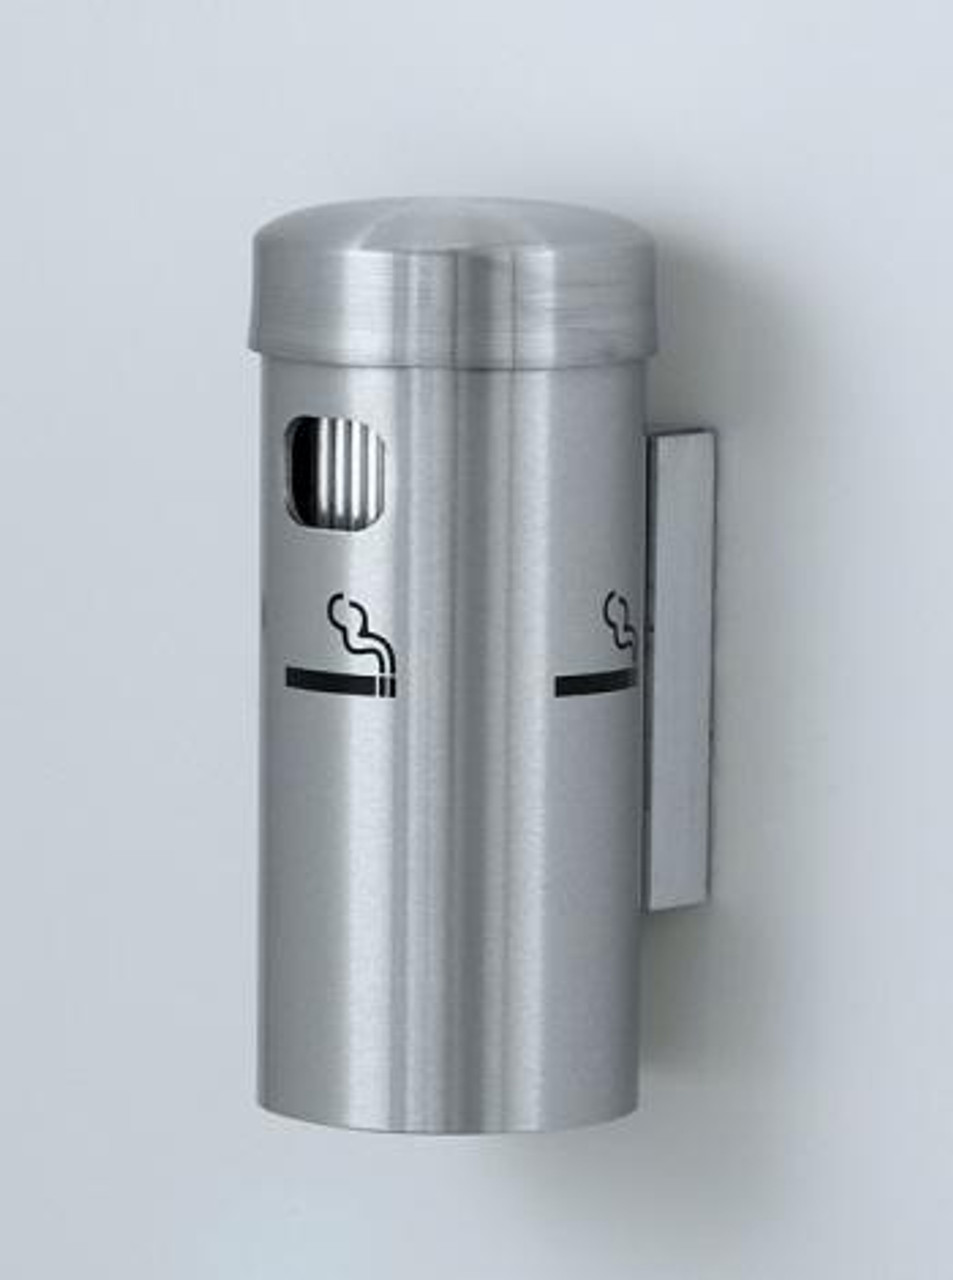 4400 Wall Mount Metal Deluxe Smokers Cigarette Receptacle Ashtray Satin Aluminum